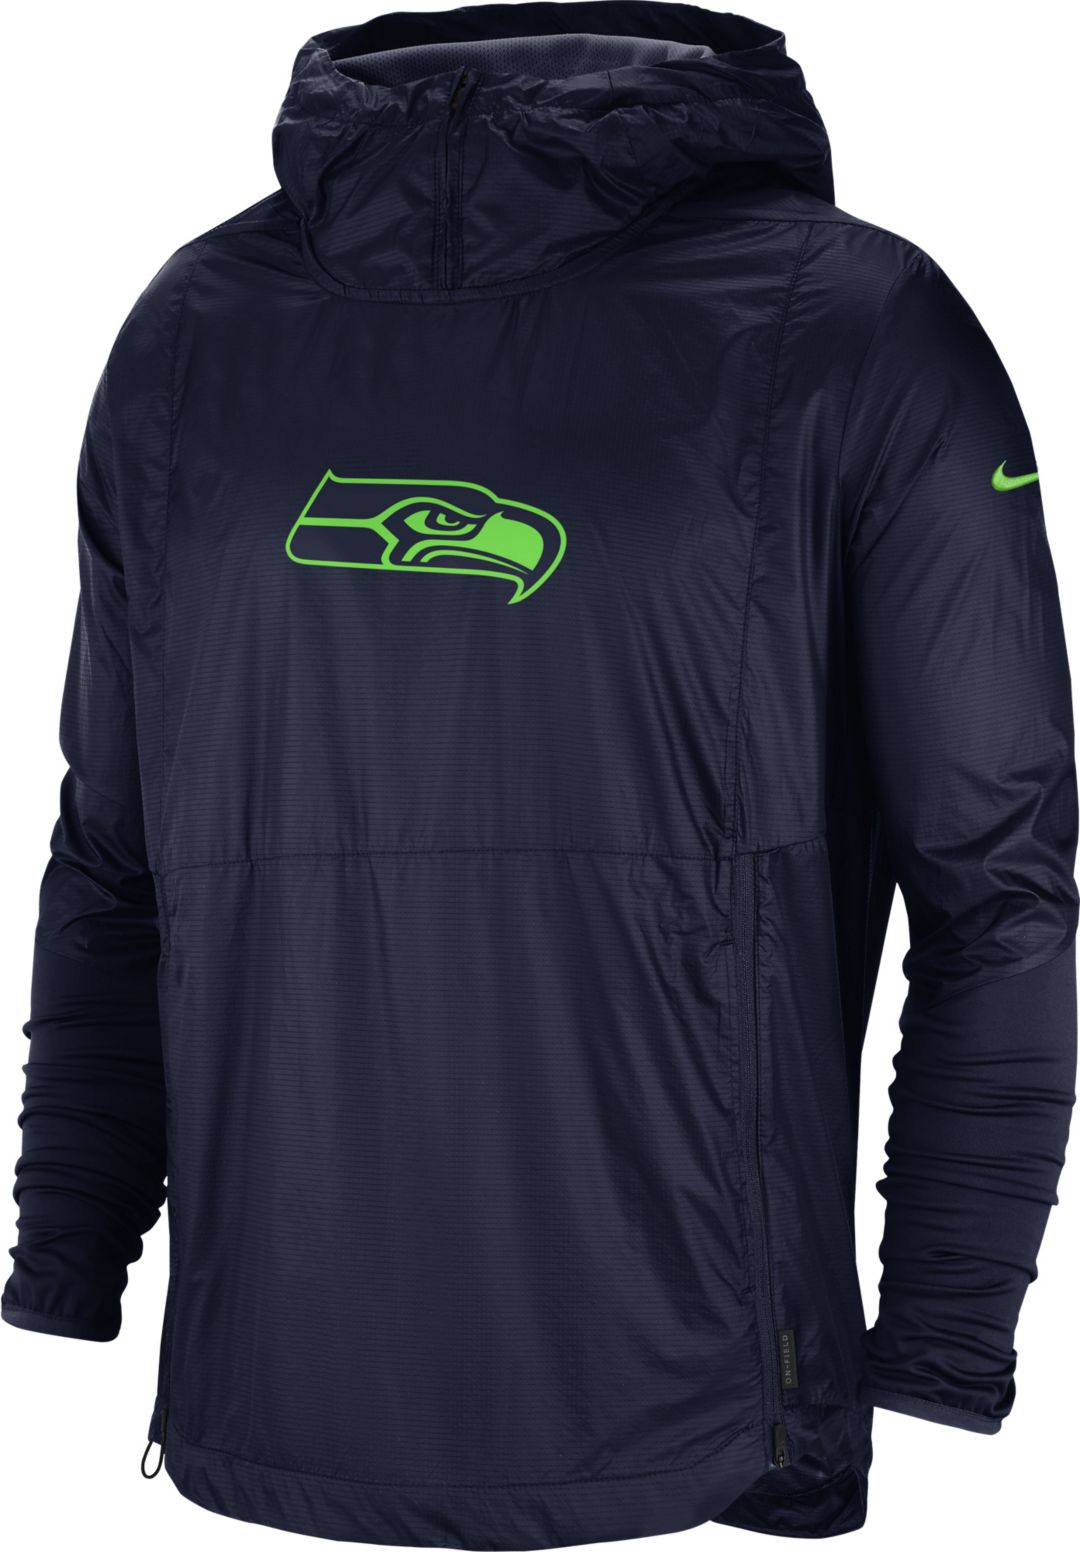 low priced e7415 e17be Nike Men's Seattle Seahawks Sideline Repel Player Navy Jacket